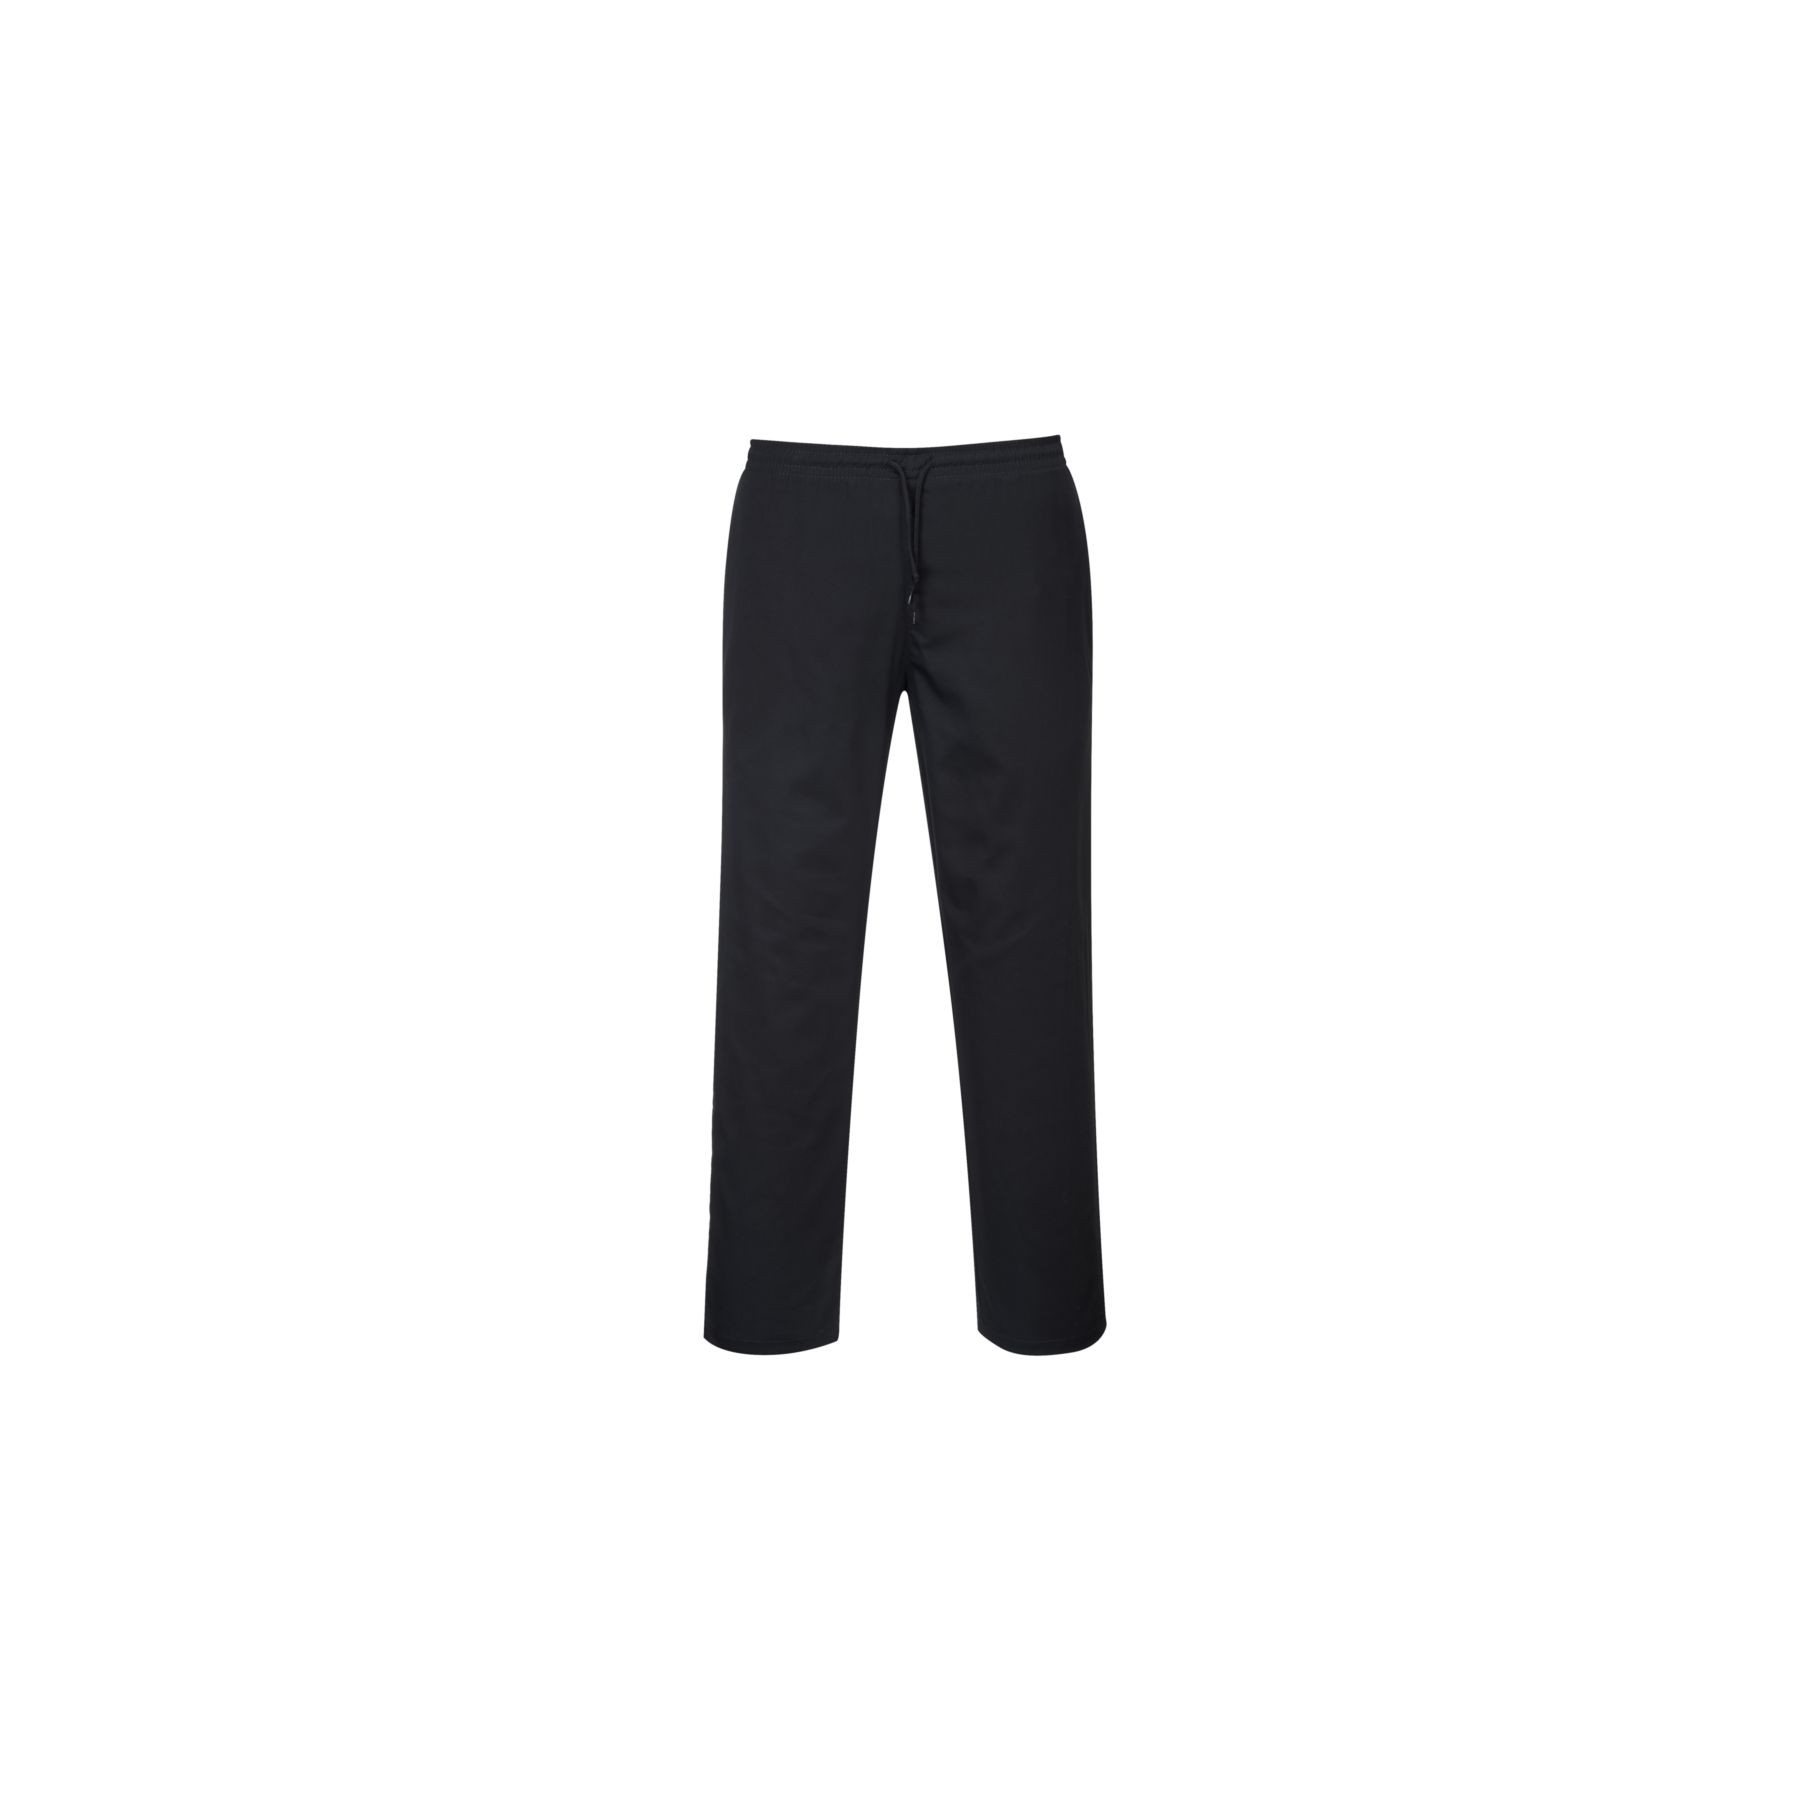 Pantalon de cuisine Portwest  DRAWSTING - Noir